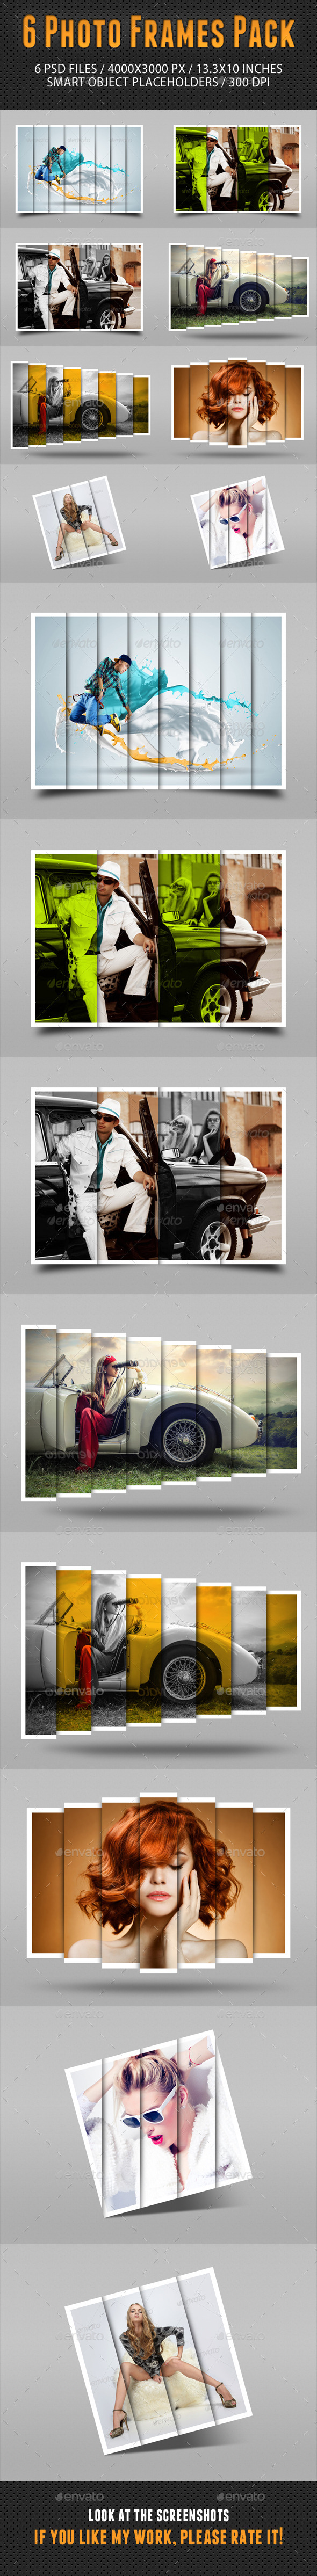 GraphicRiver Photo Frames Pack 14 10957319